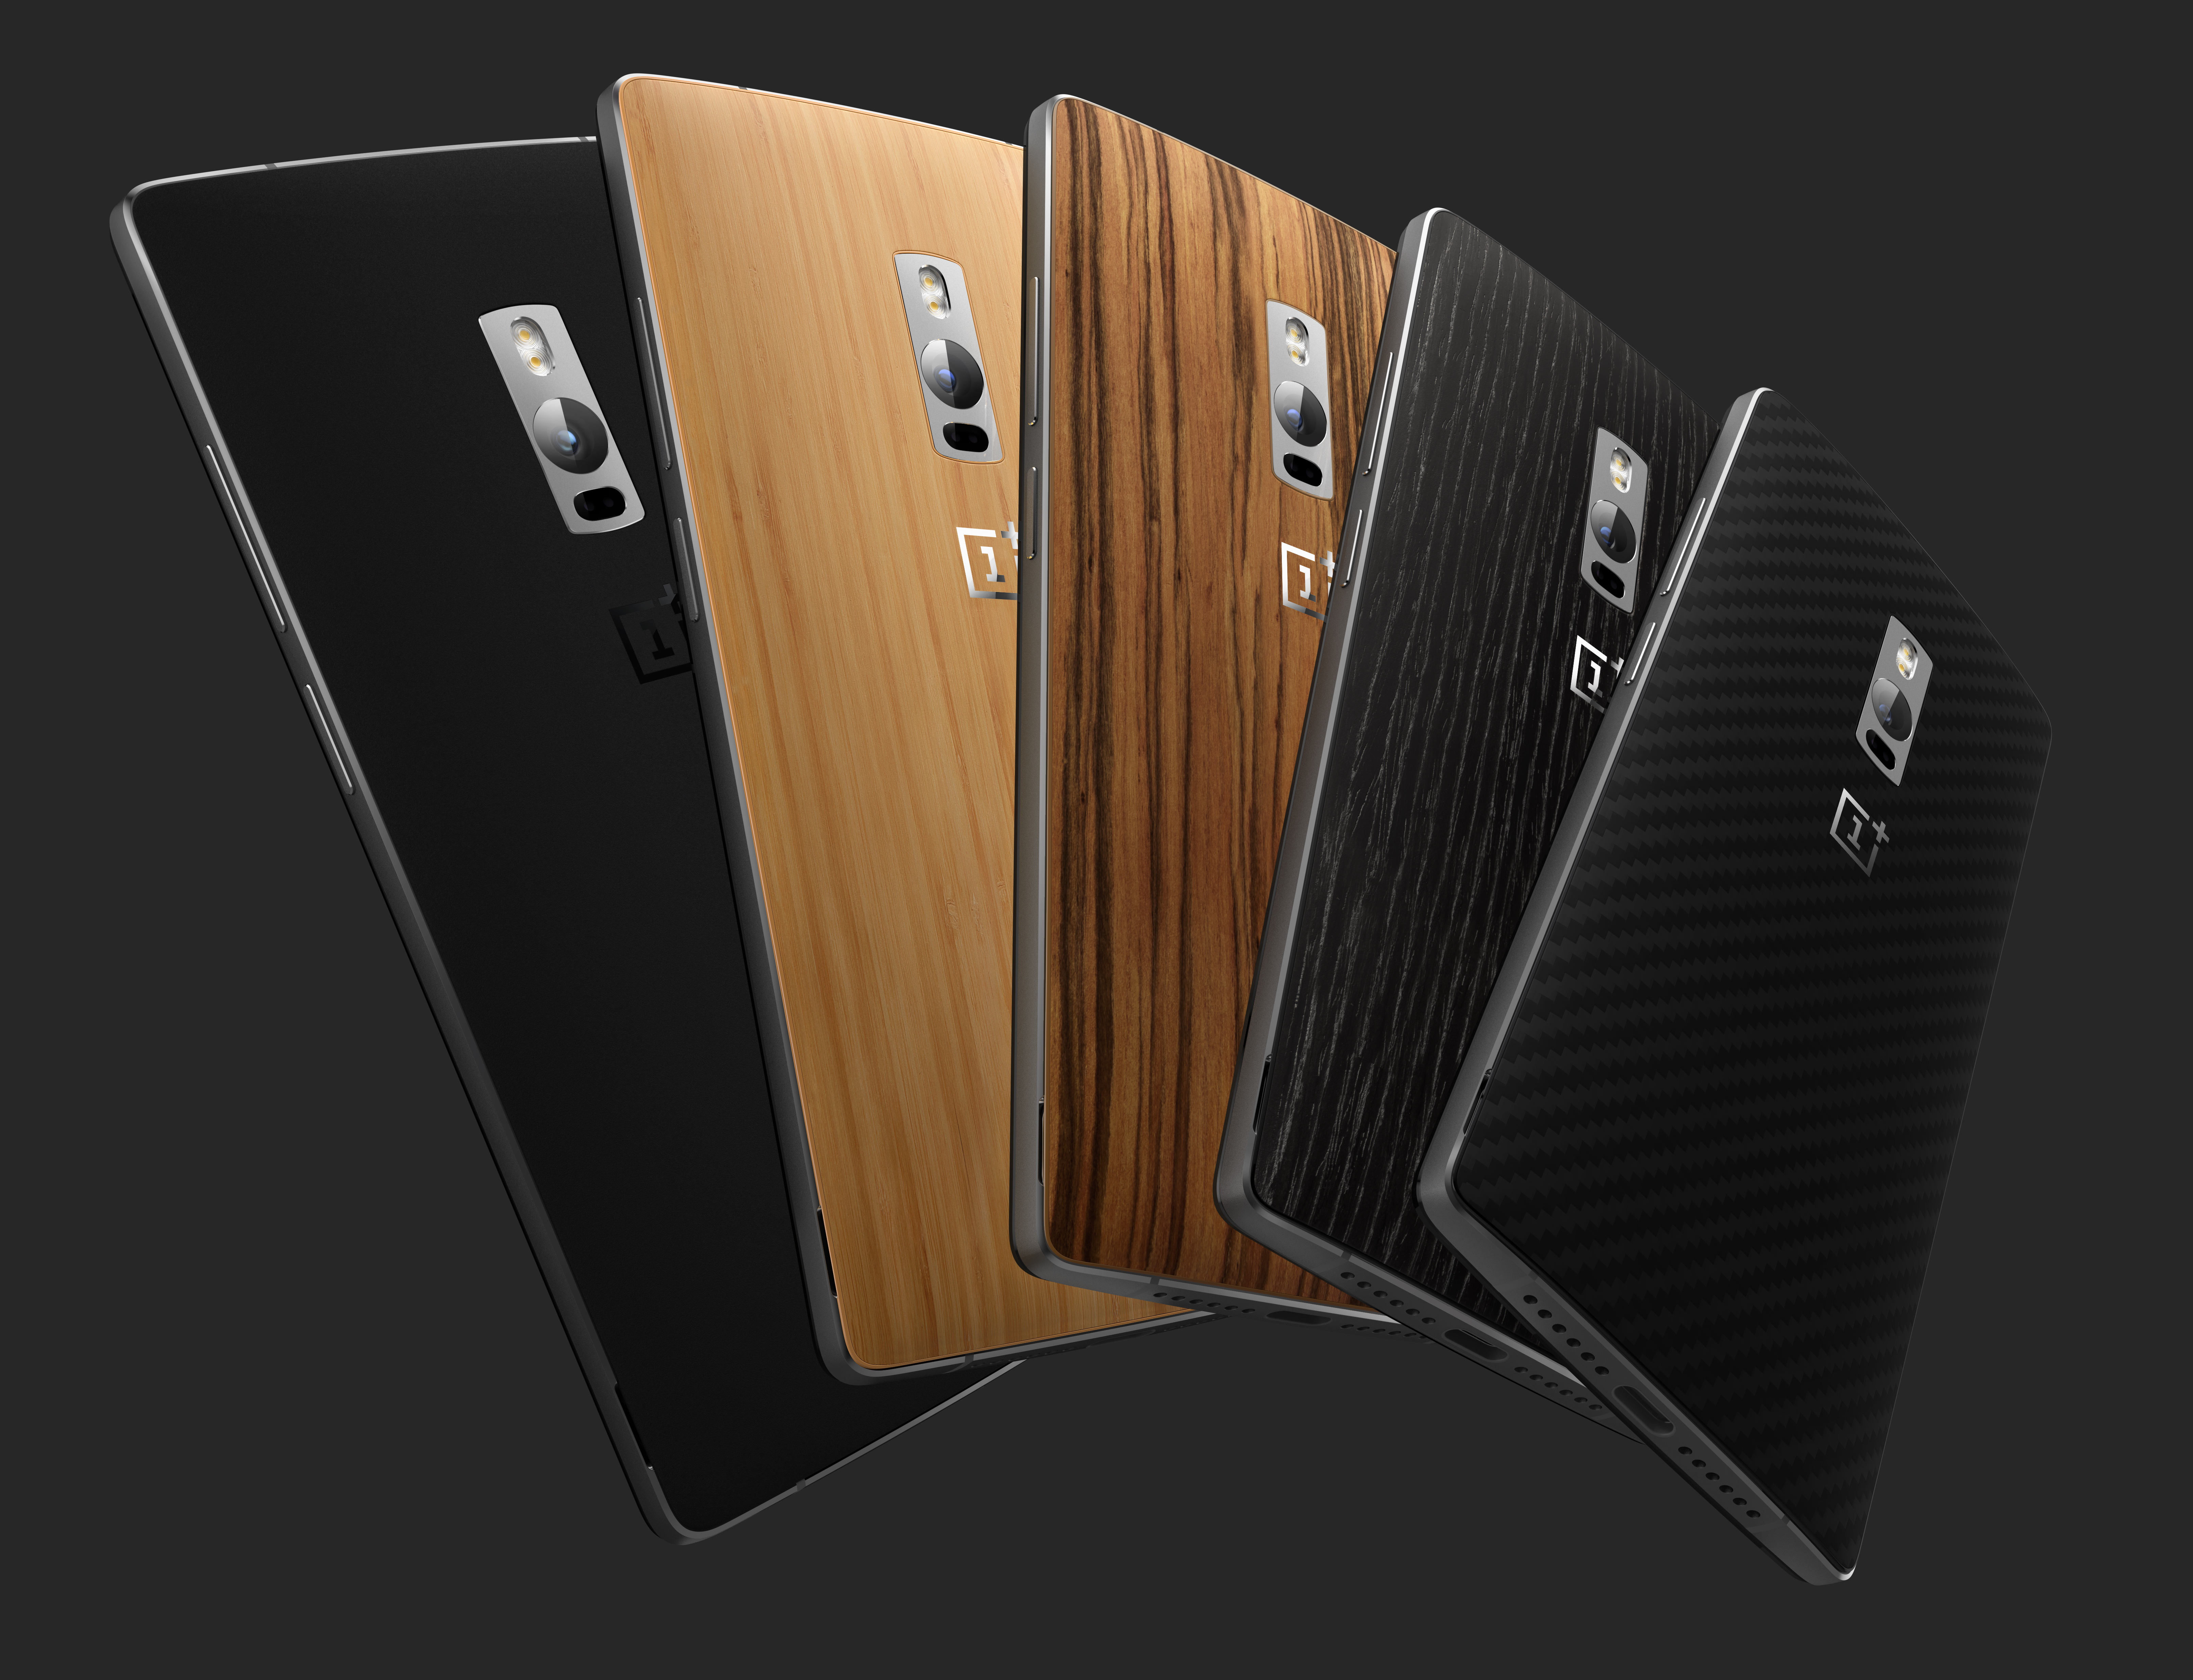 The new OnePlus 2 smartphone.